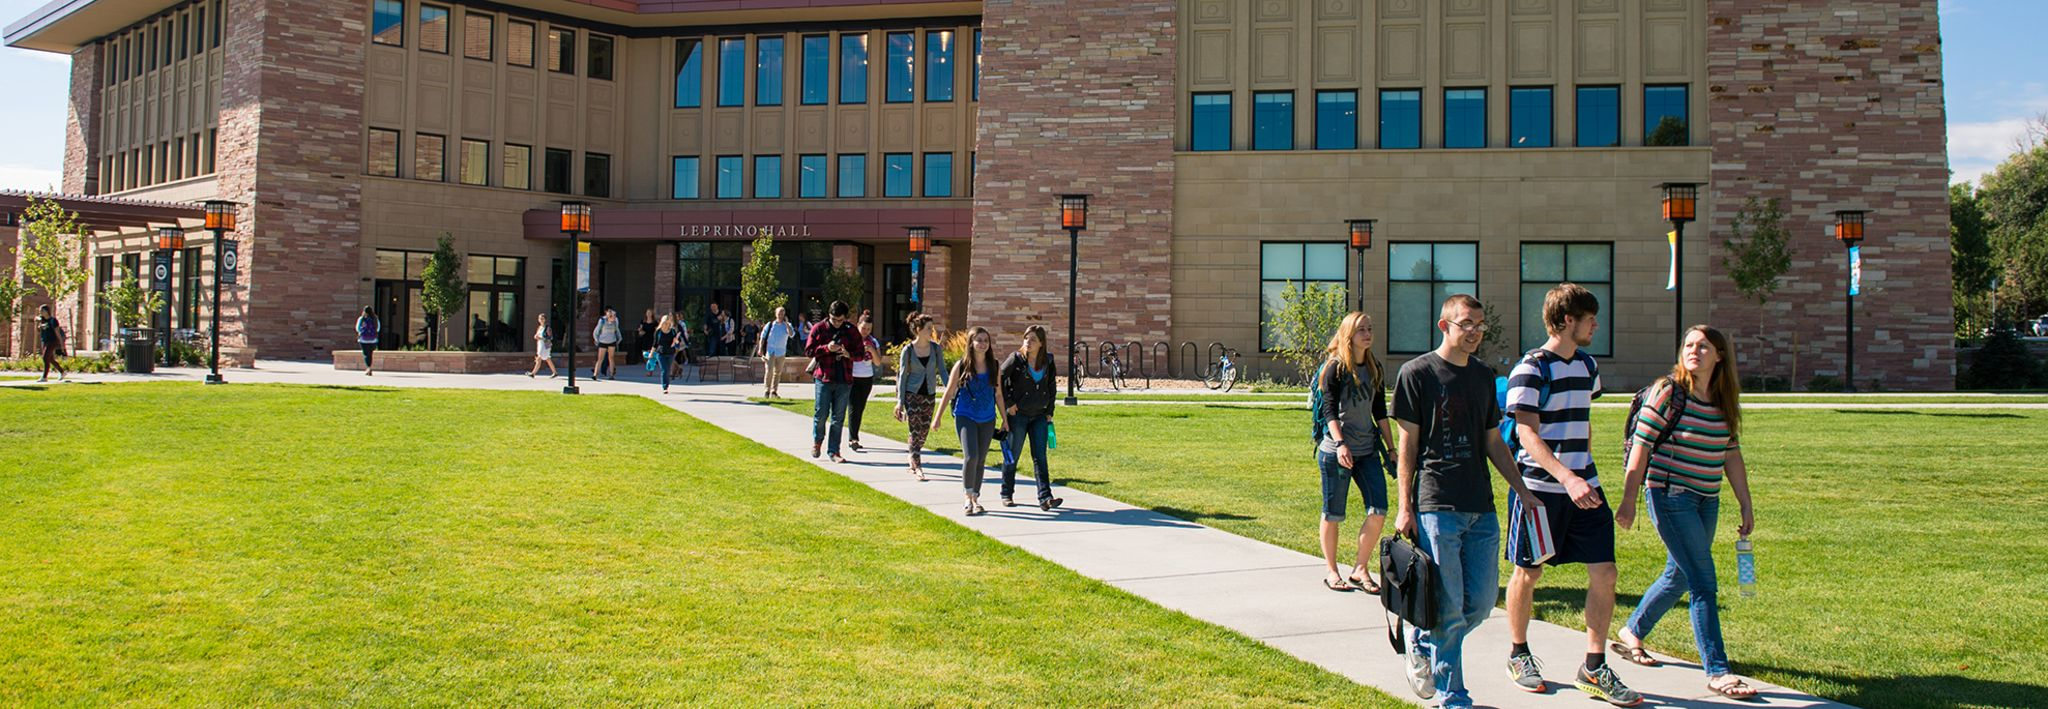 Colorado Christian University students walking out of Leprino after class.